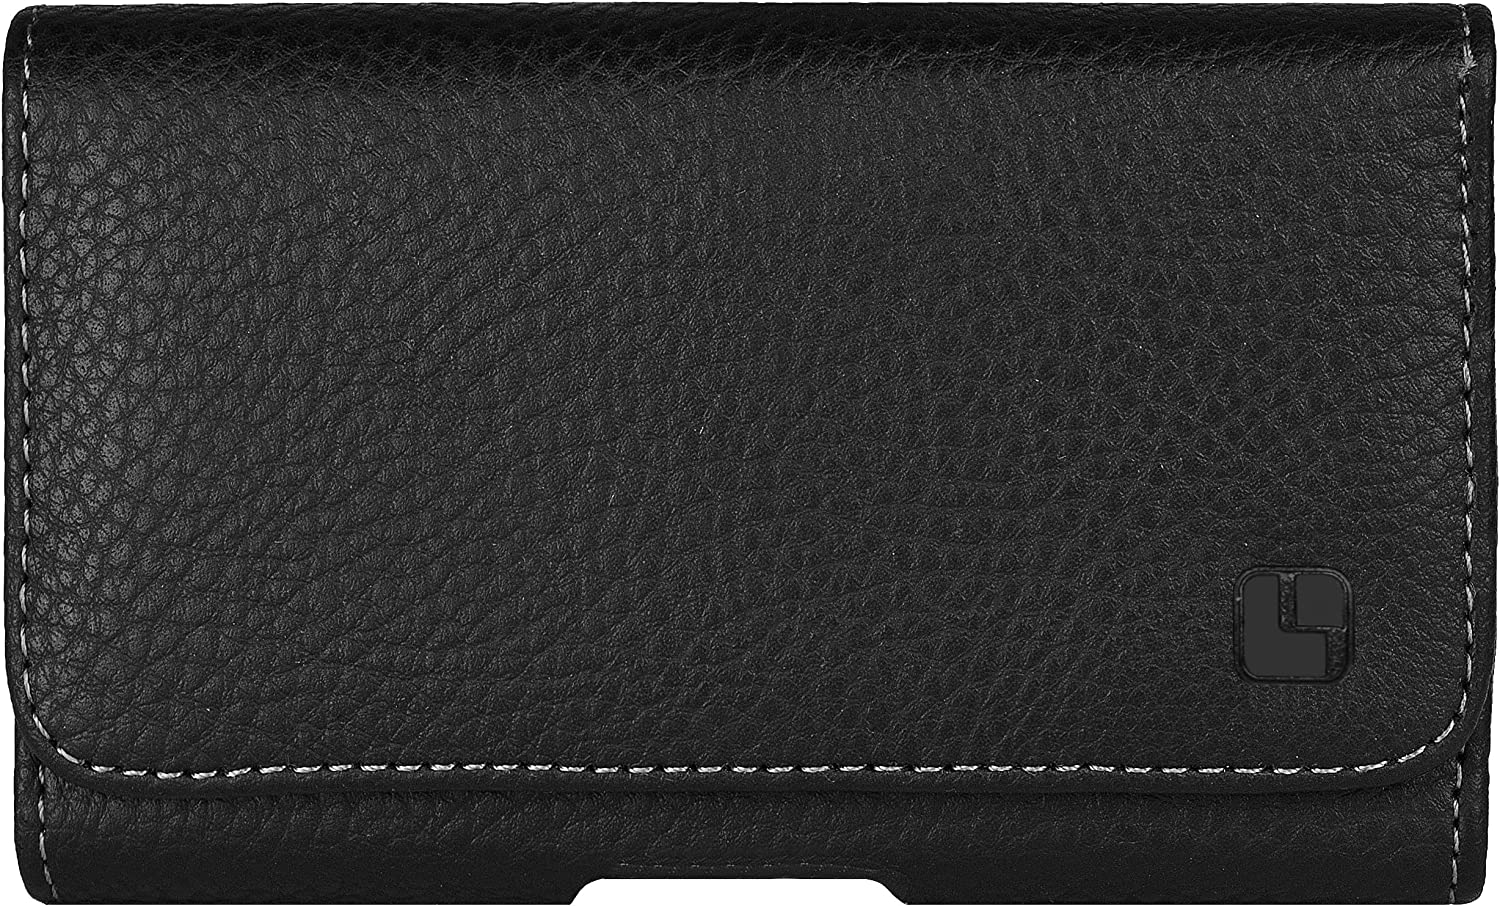 Cell Phone Holster Pouch with Belt Clip for iPhone 12 Pro, 12, 11, 11 Pro, XR, XS, 8, X (Pebble Black)